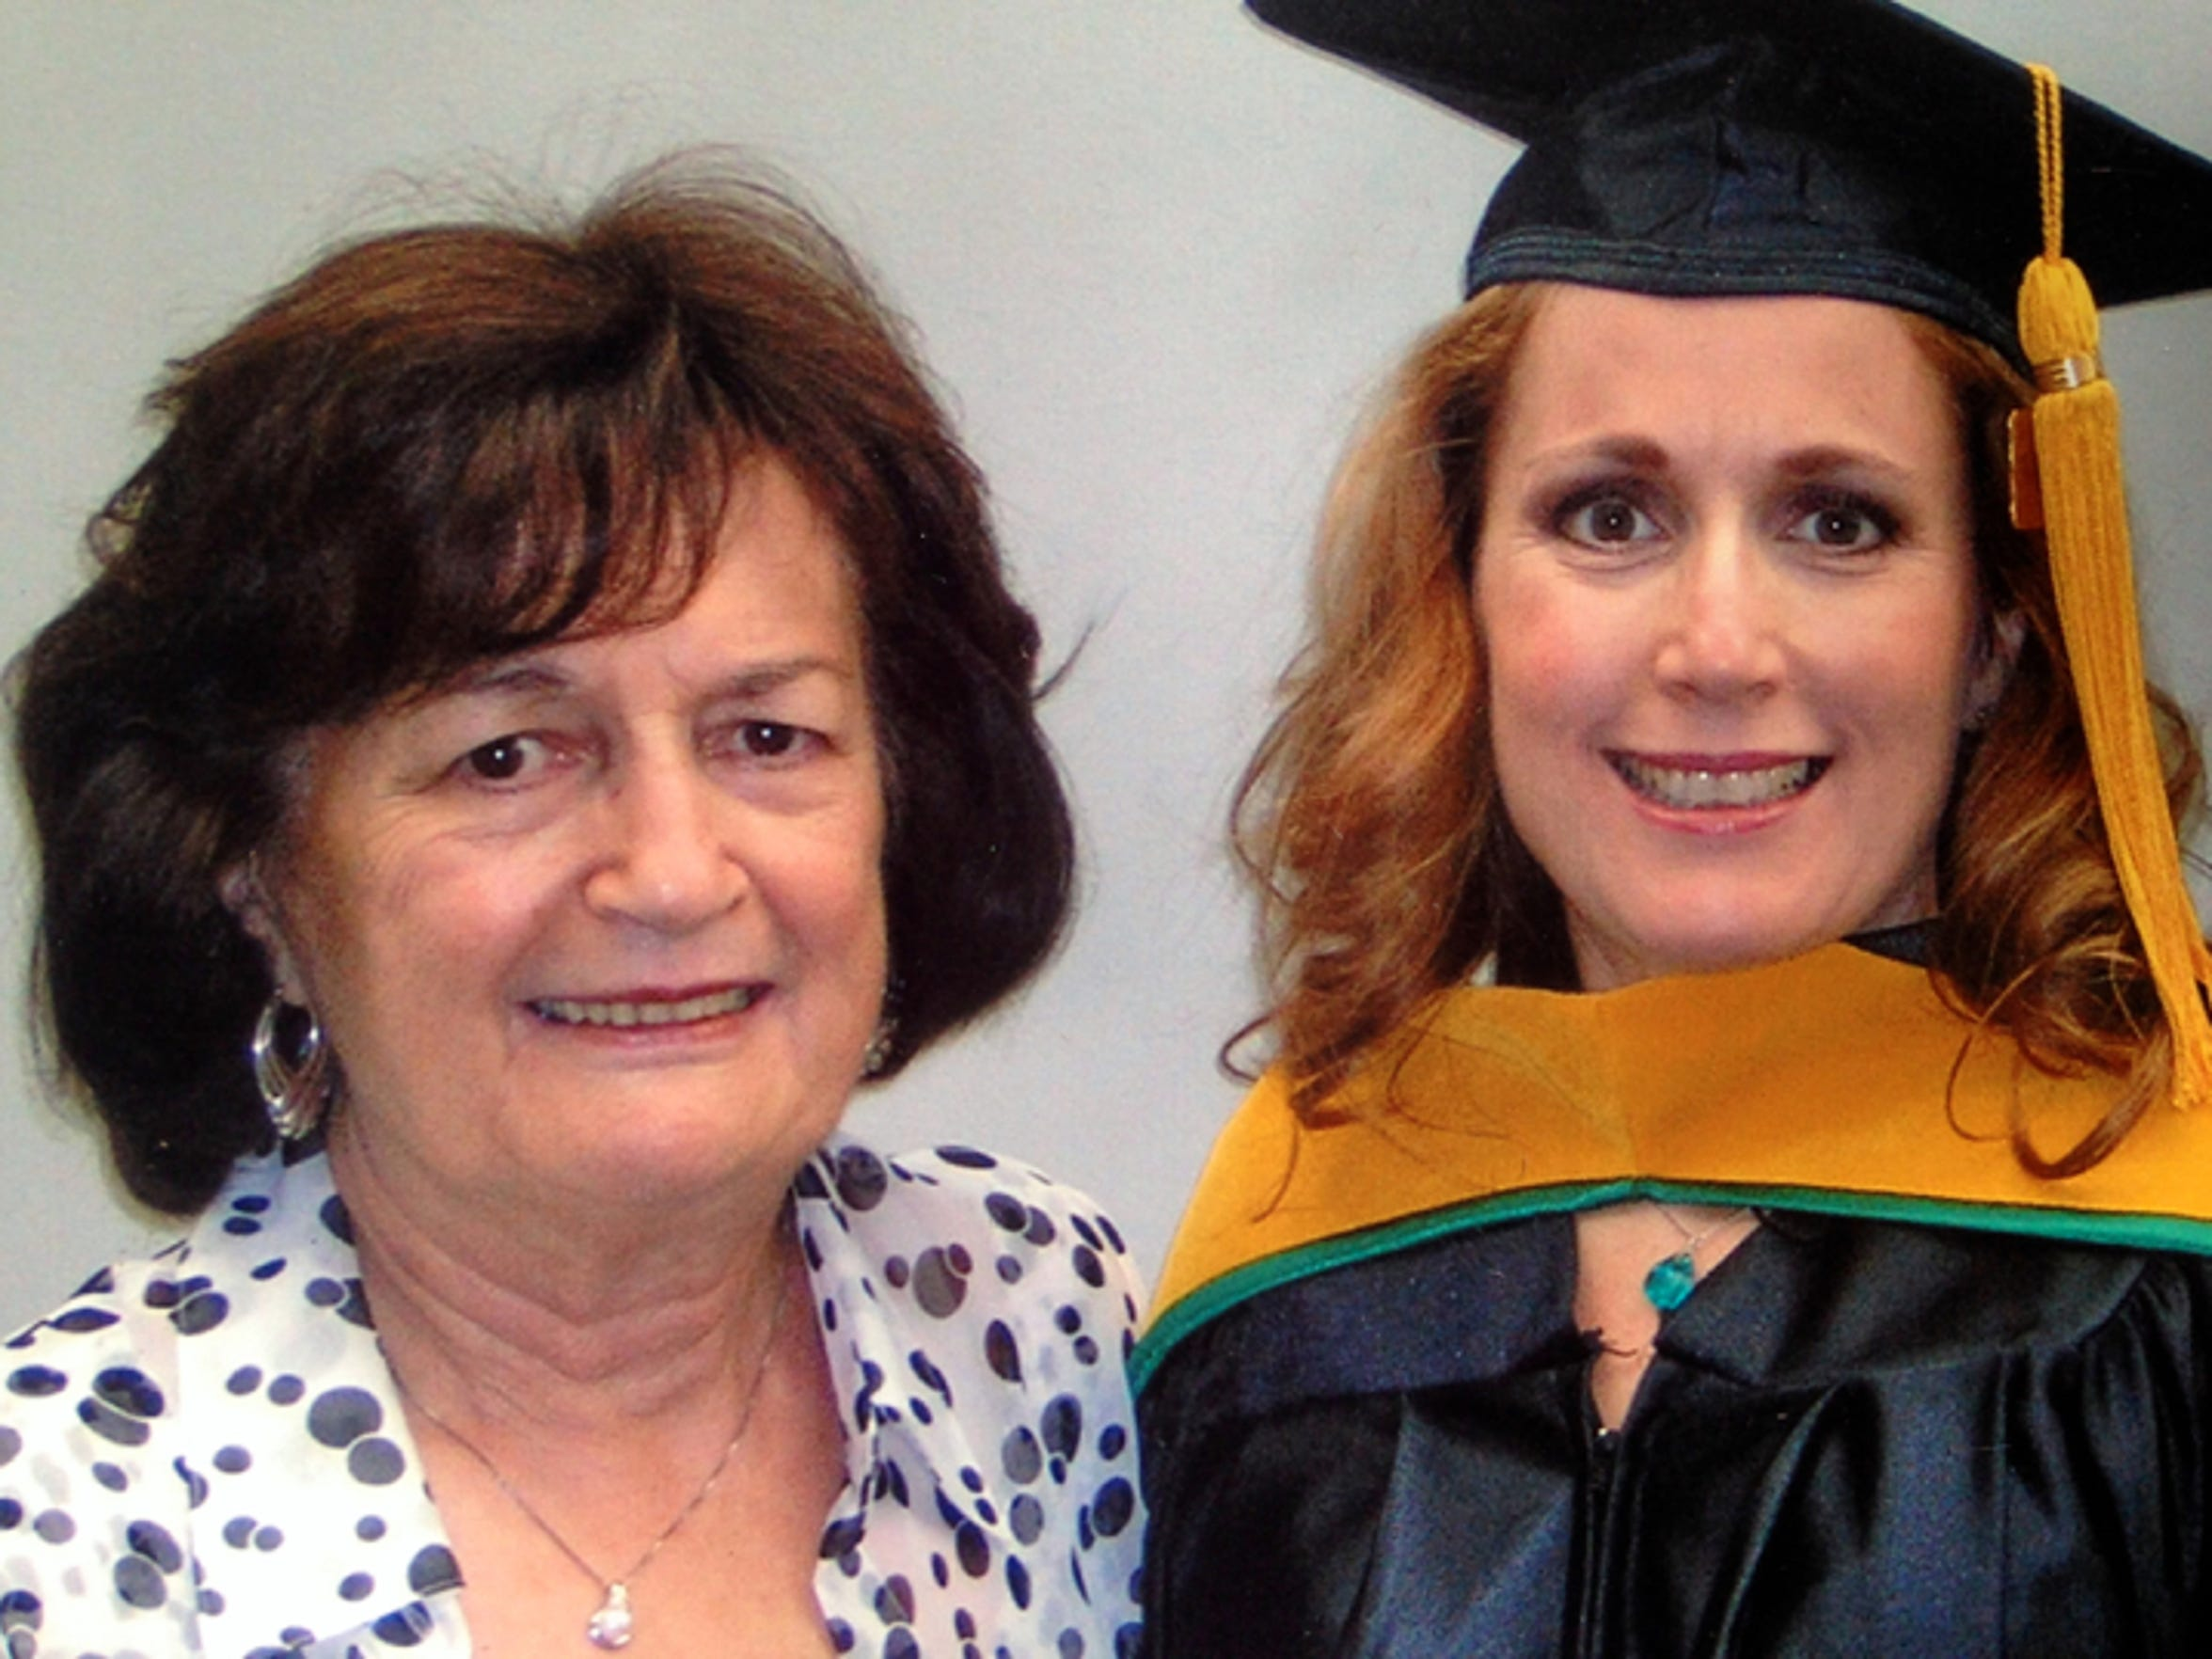 Teresa and her mom celebrating graduation